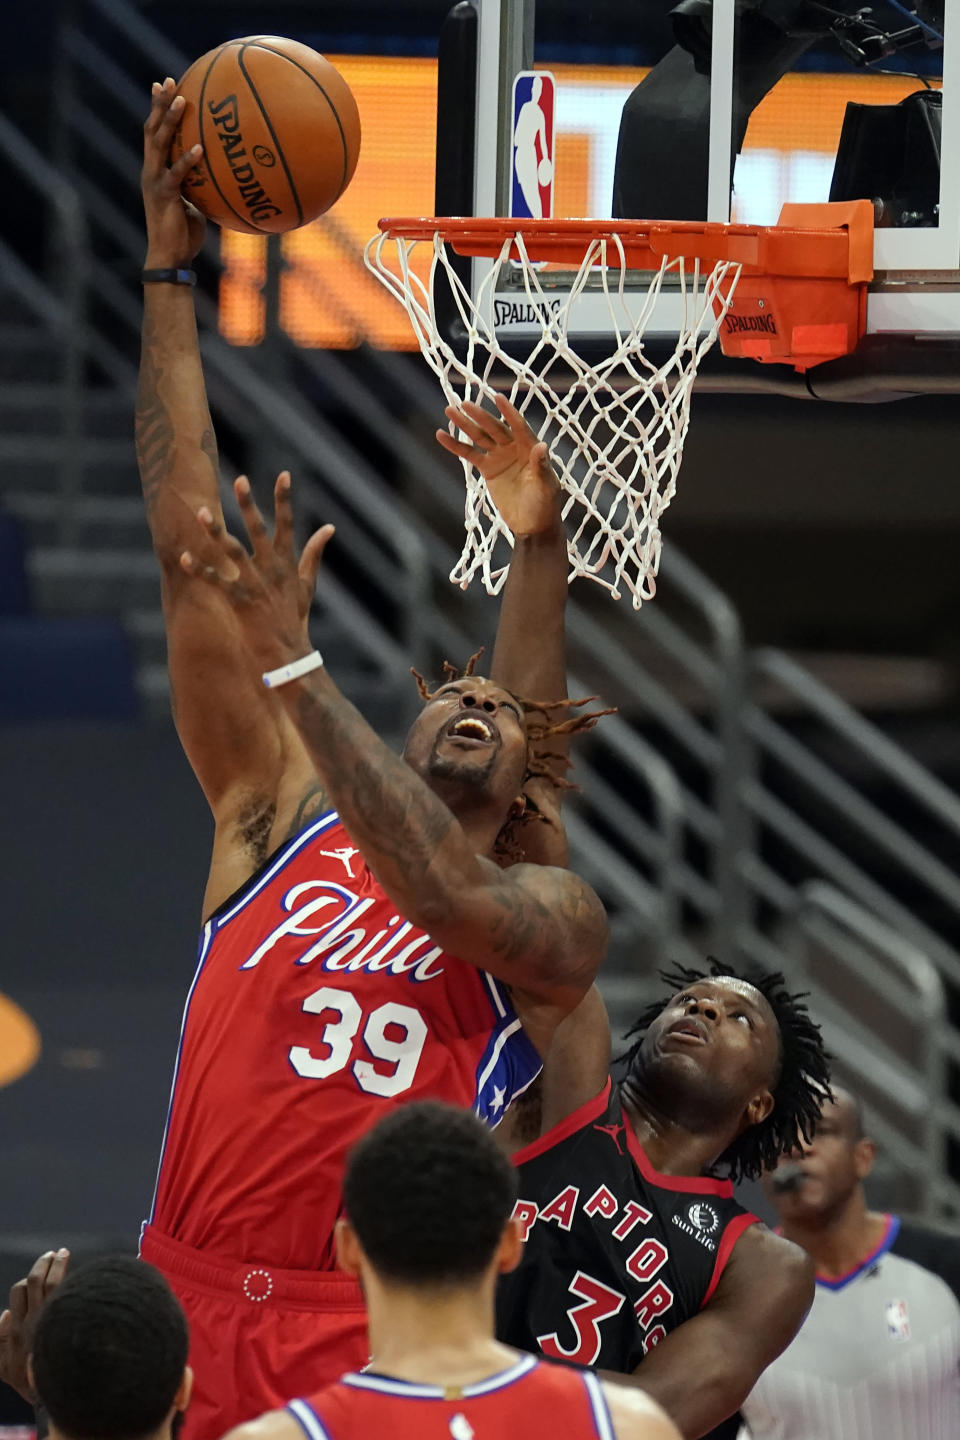 Philadelphia 76ers center Dwight Howard (39) shoots over Toronto Raptors forward OG Anunoby (3) during the first half of an NBA basketball game Sunday, Feb. 21, 2021, in Tampa, Fla. (AP Photo/Chris O'Meara)